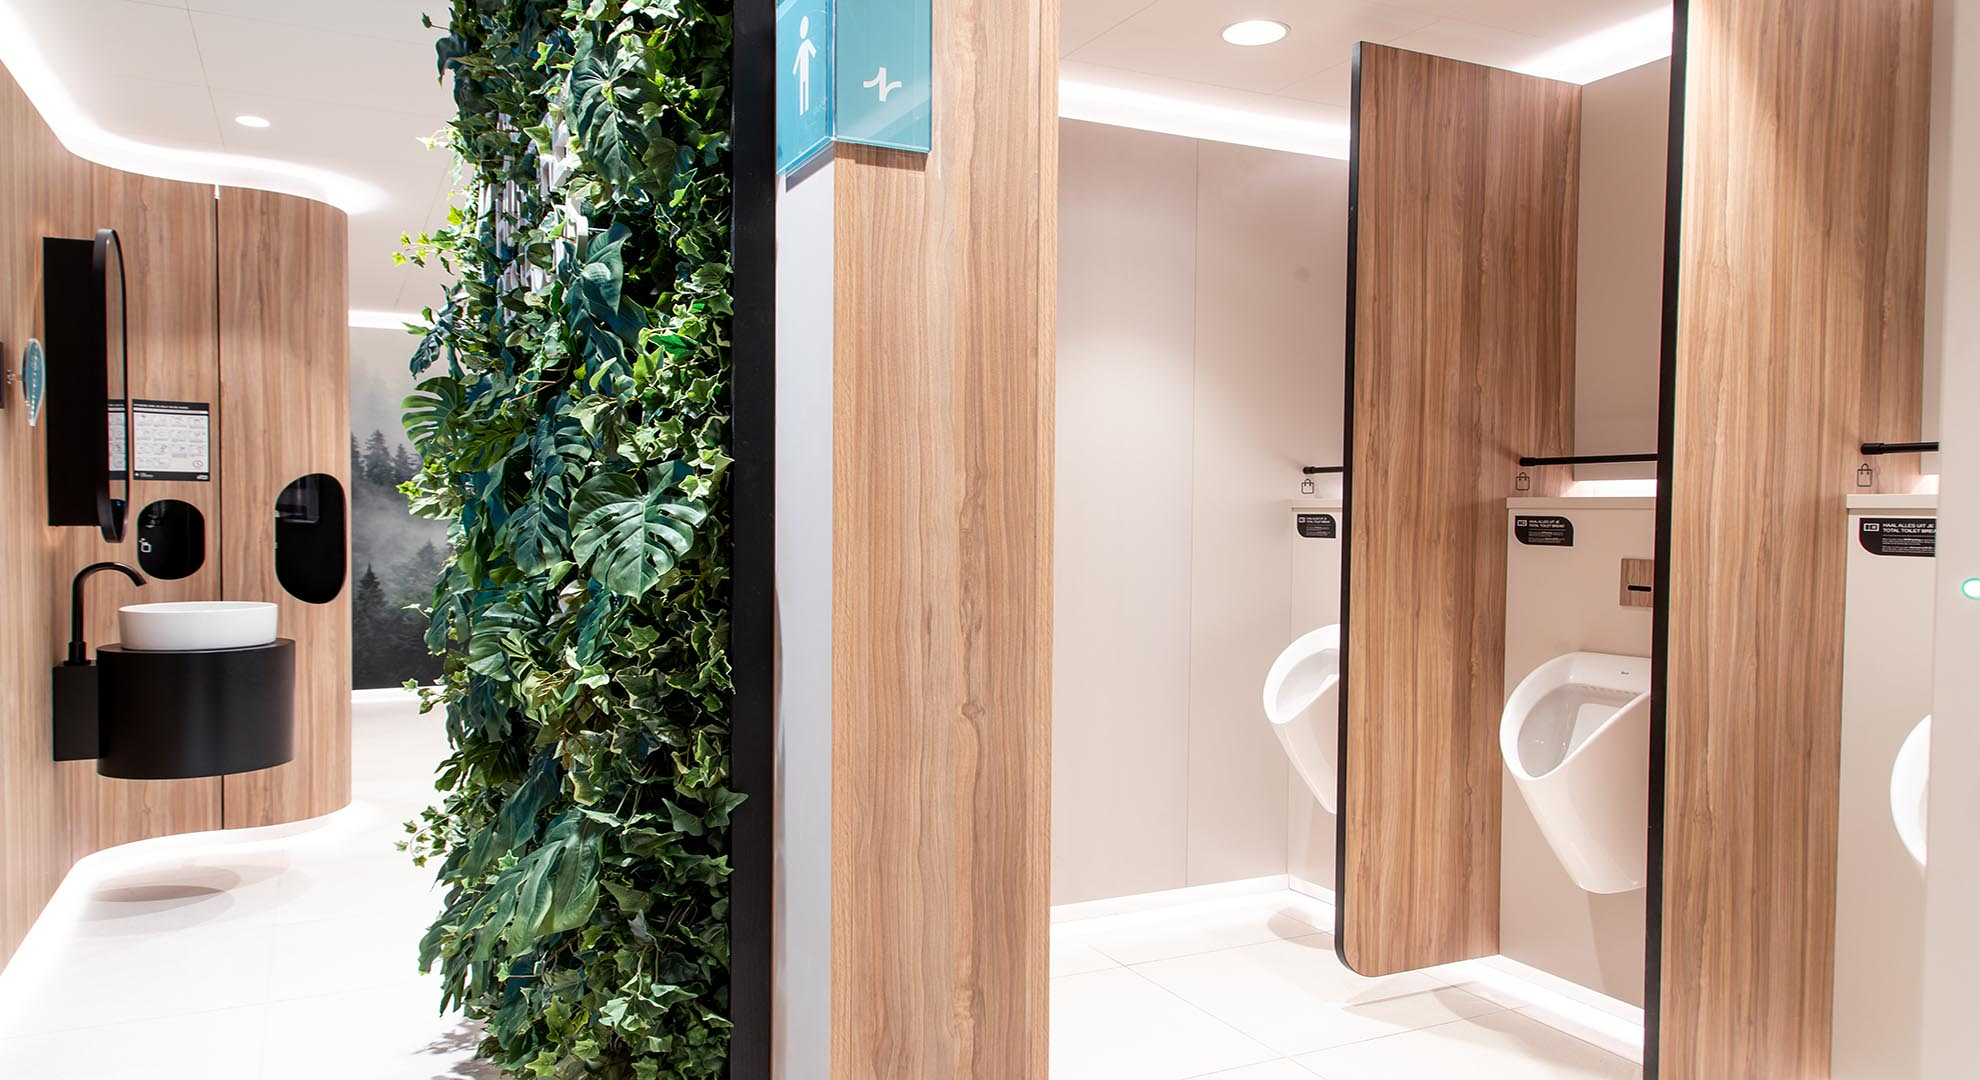 View of a Roca bathroom design with One Hundred Restrooms.